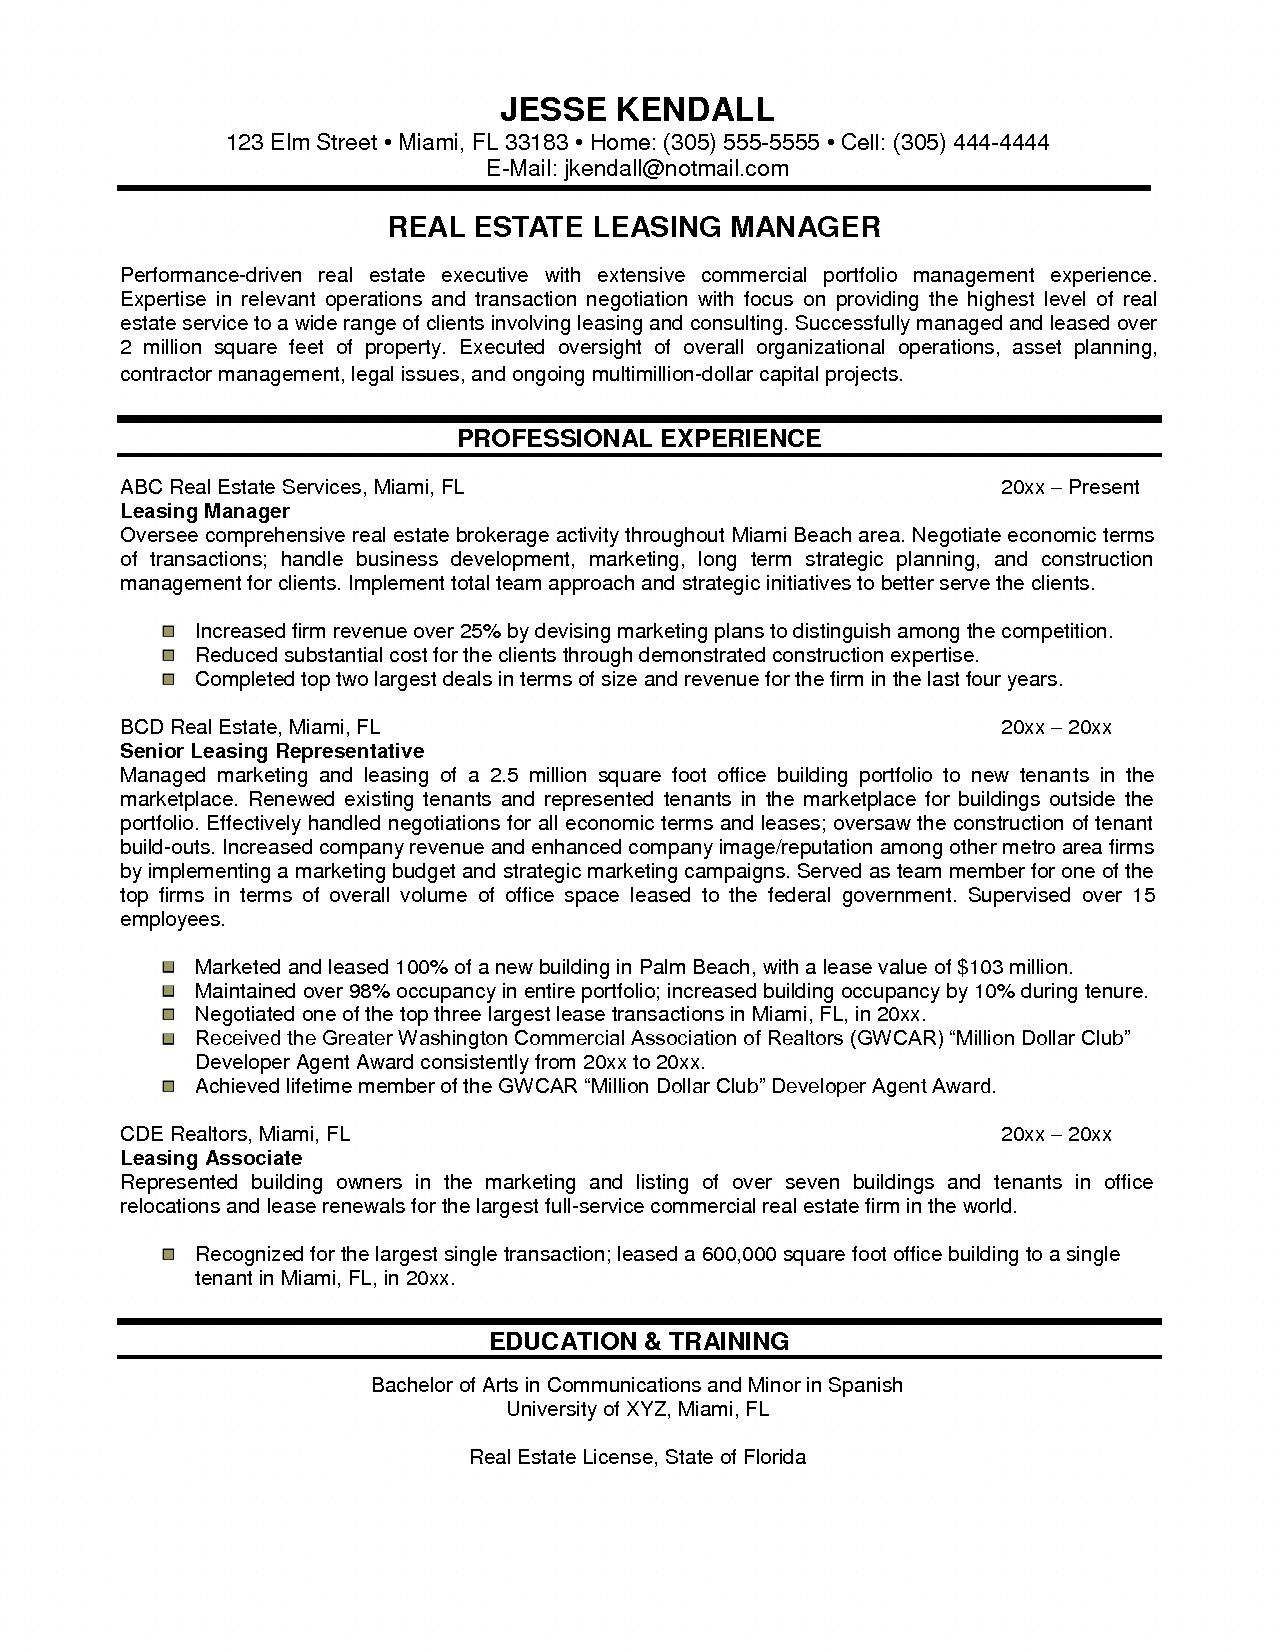 Retail Store Manager Resume Commercial Property Manager Resume Samples  Building Manager